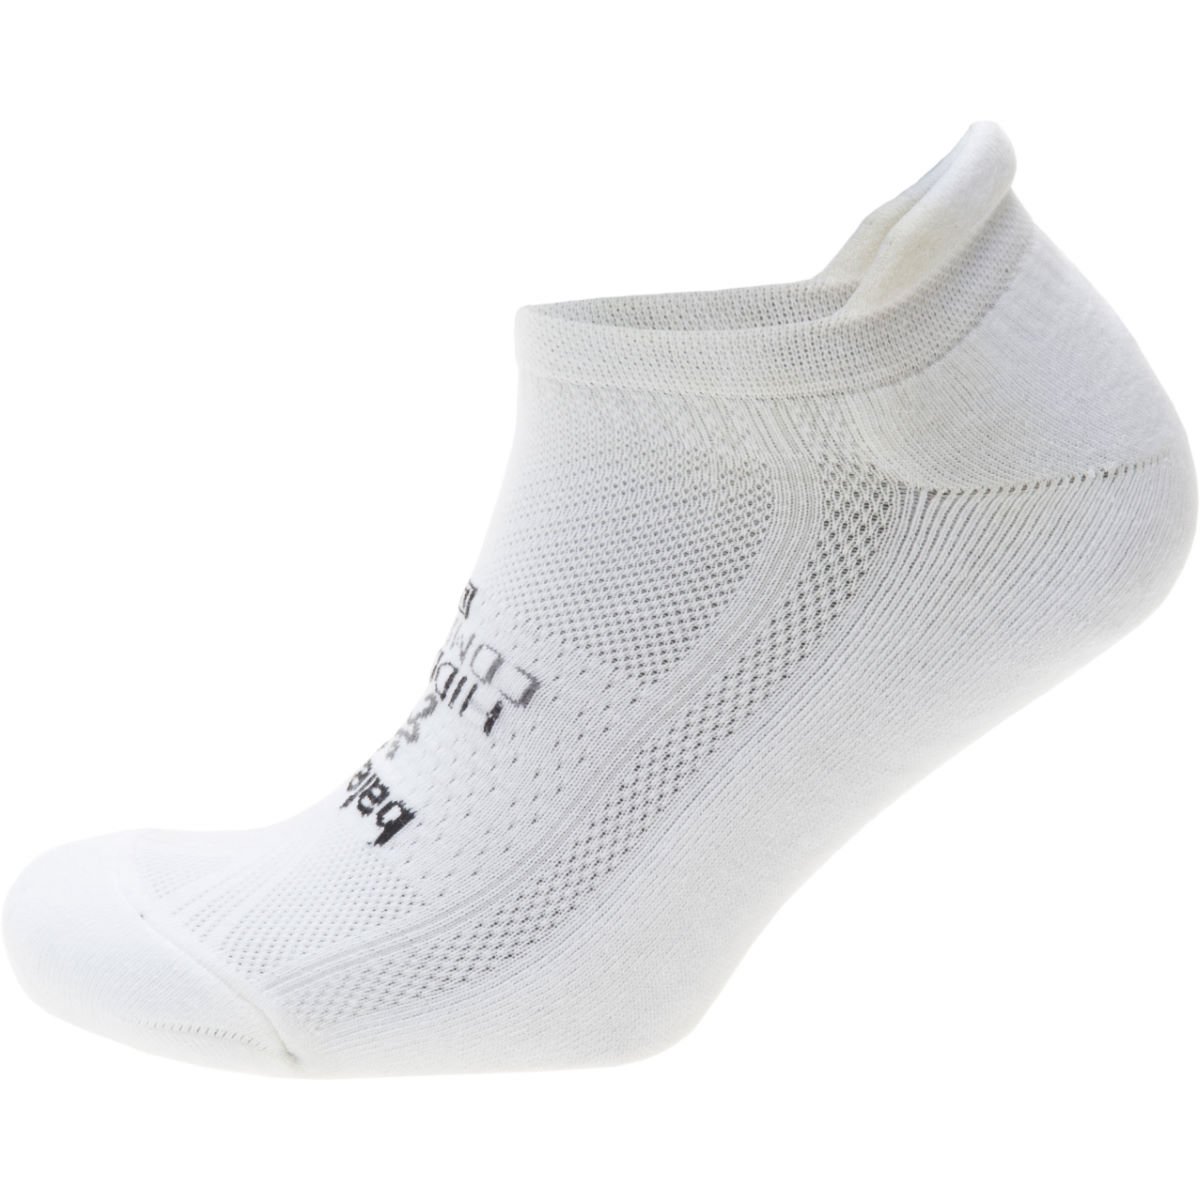 Image of Chaussettes Balega Hidden Comfort - Extra Large Blanc | Chaussettes